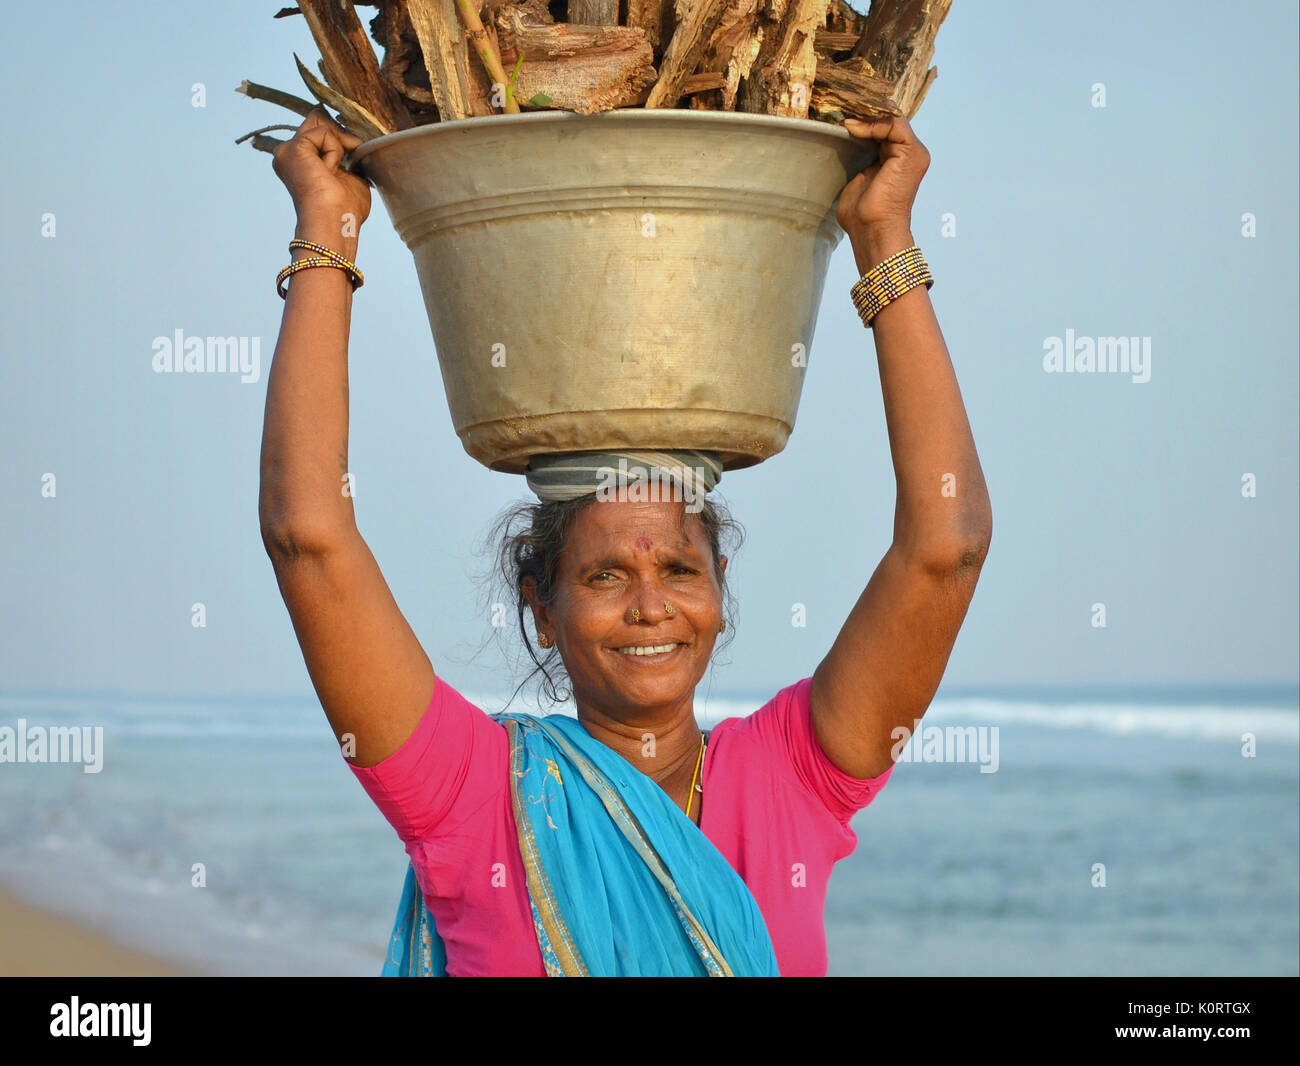 Elderly Orissan woman from the local fishing community at Puri, carrying a heavy load of firewood on her head. - Stock Image